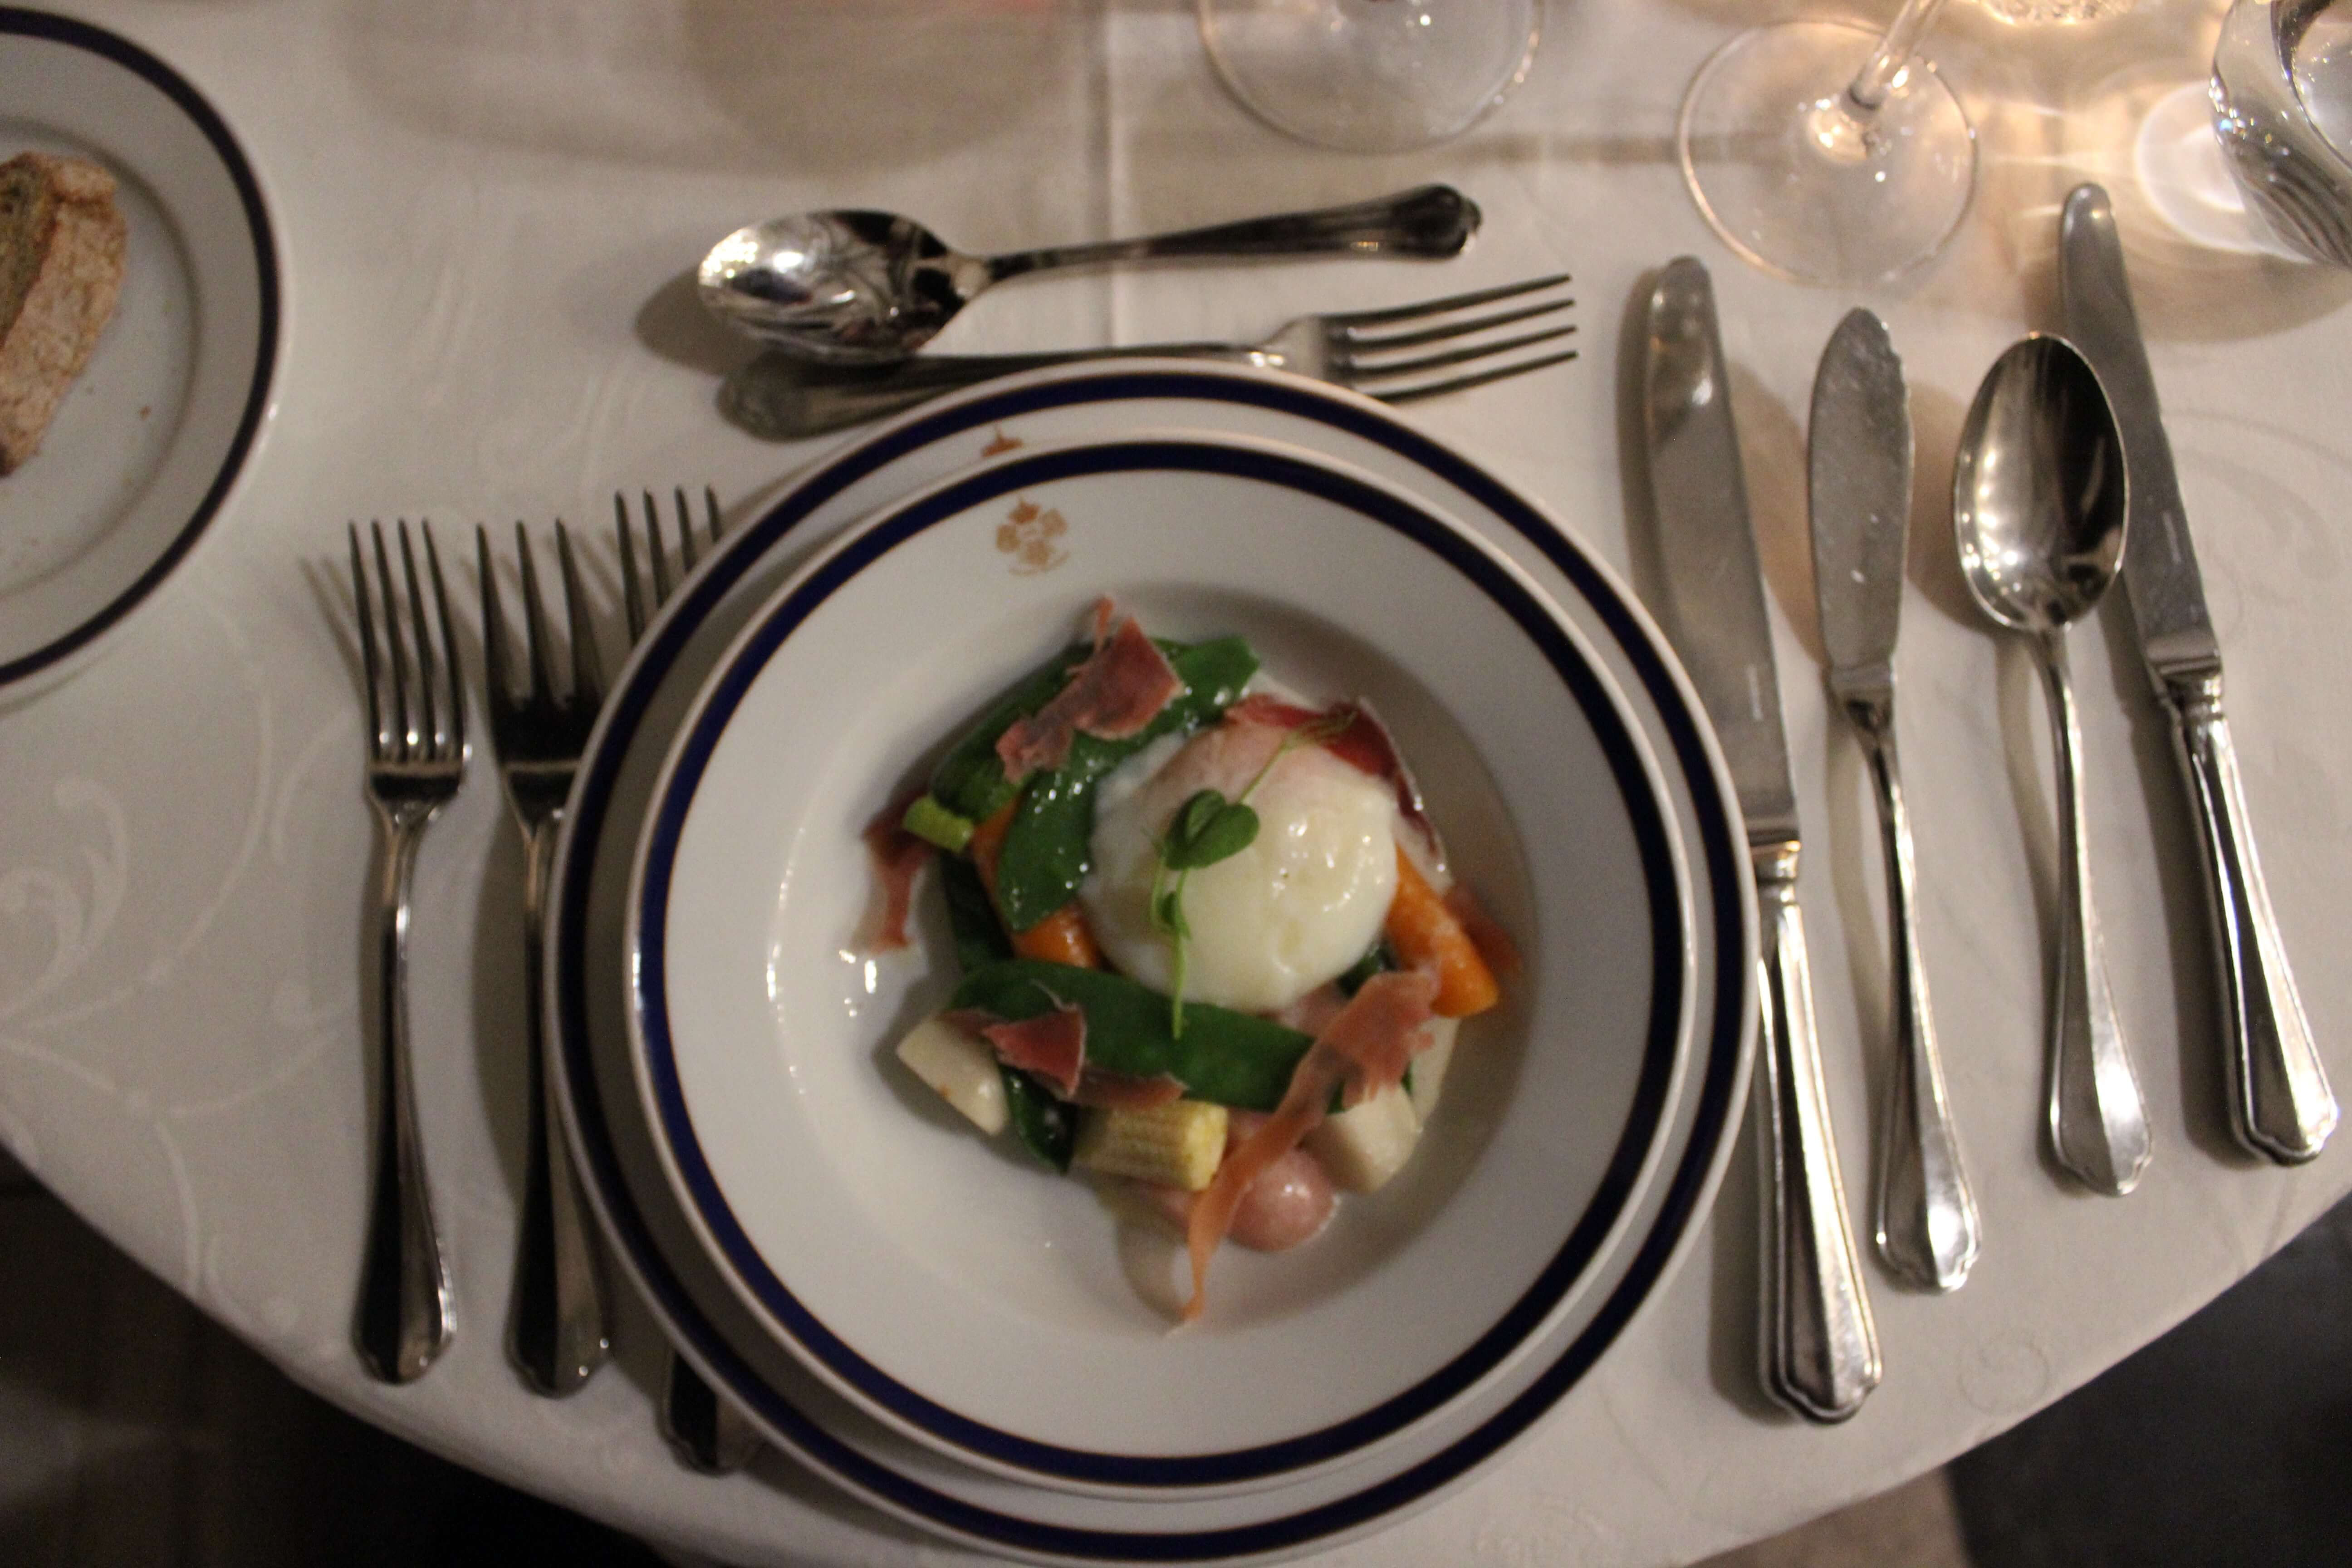 poached egg and veggies